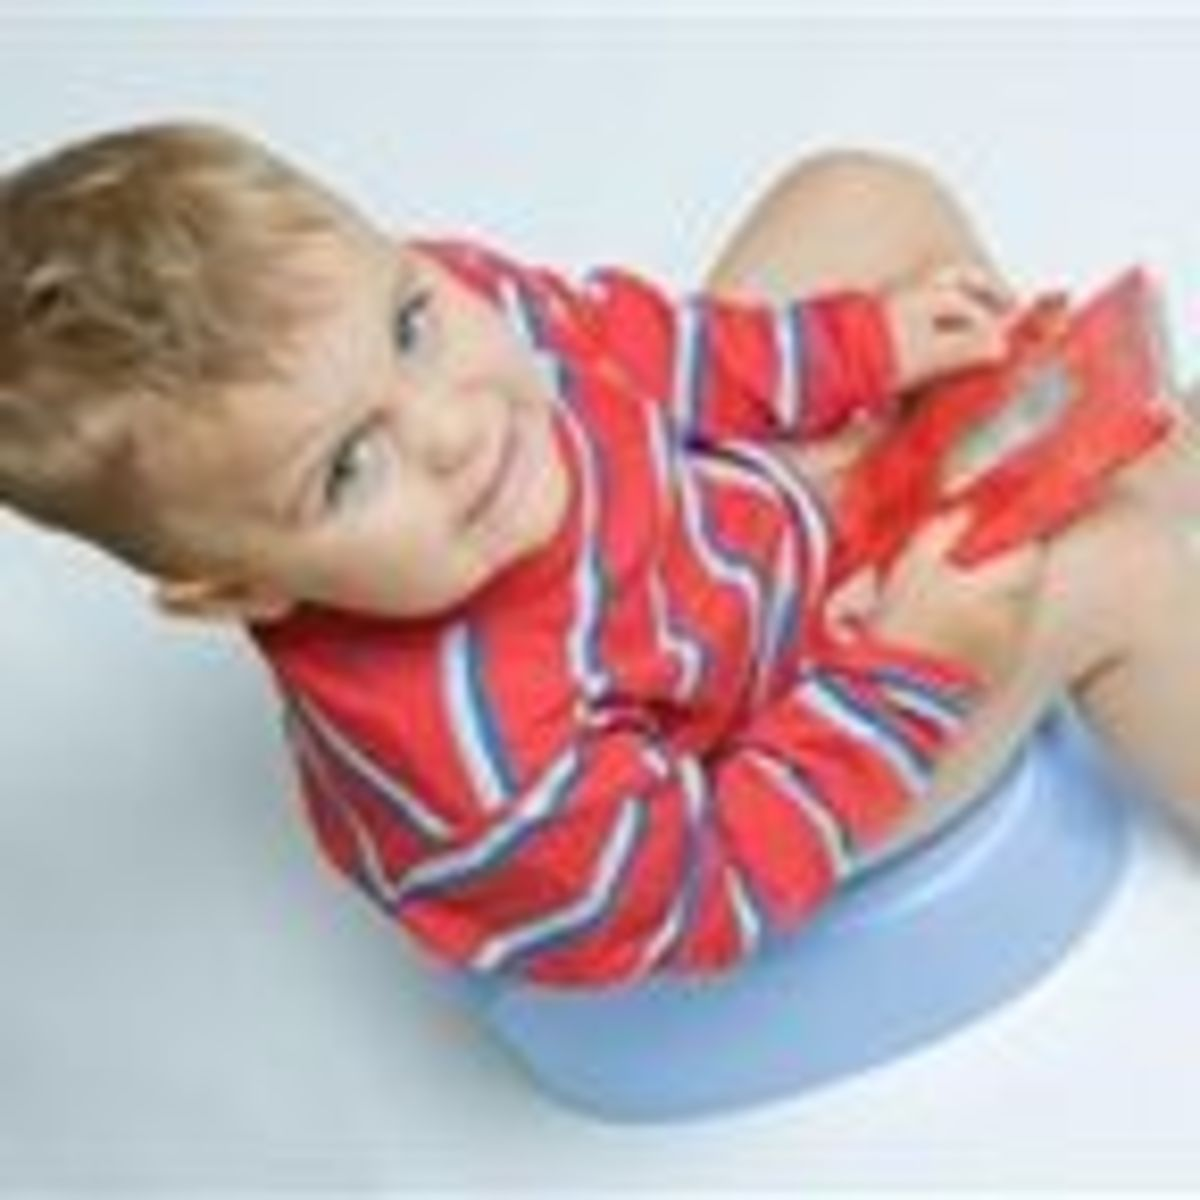 When You Pee on Your Brother, You've Gone Too Far | Psychology Today